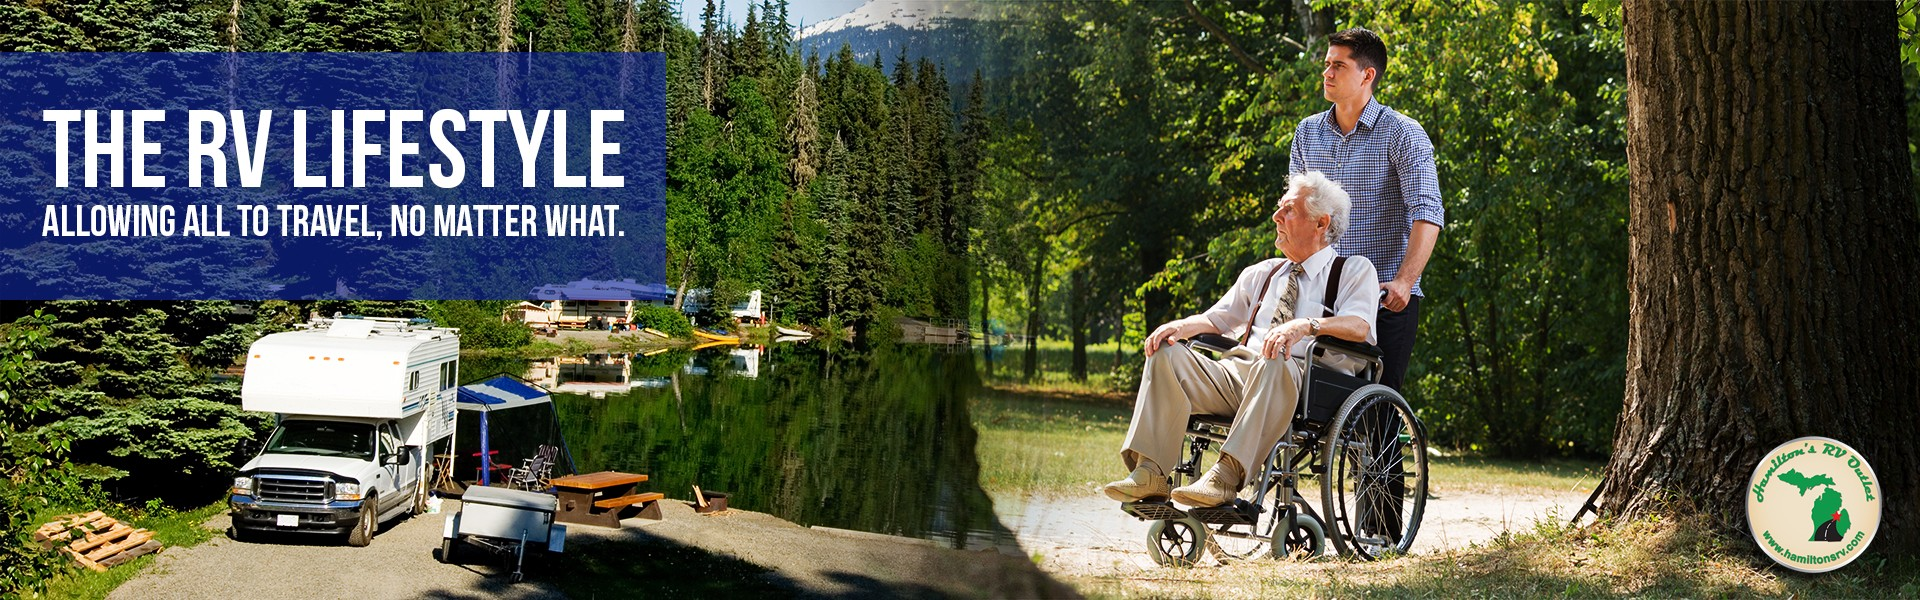 The RV lifestyle: Allowing all to travel, no matter what. Man in a wheelchair with his grandson.